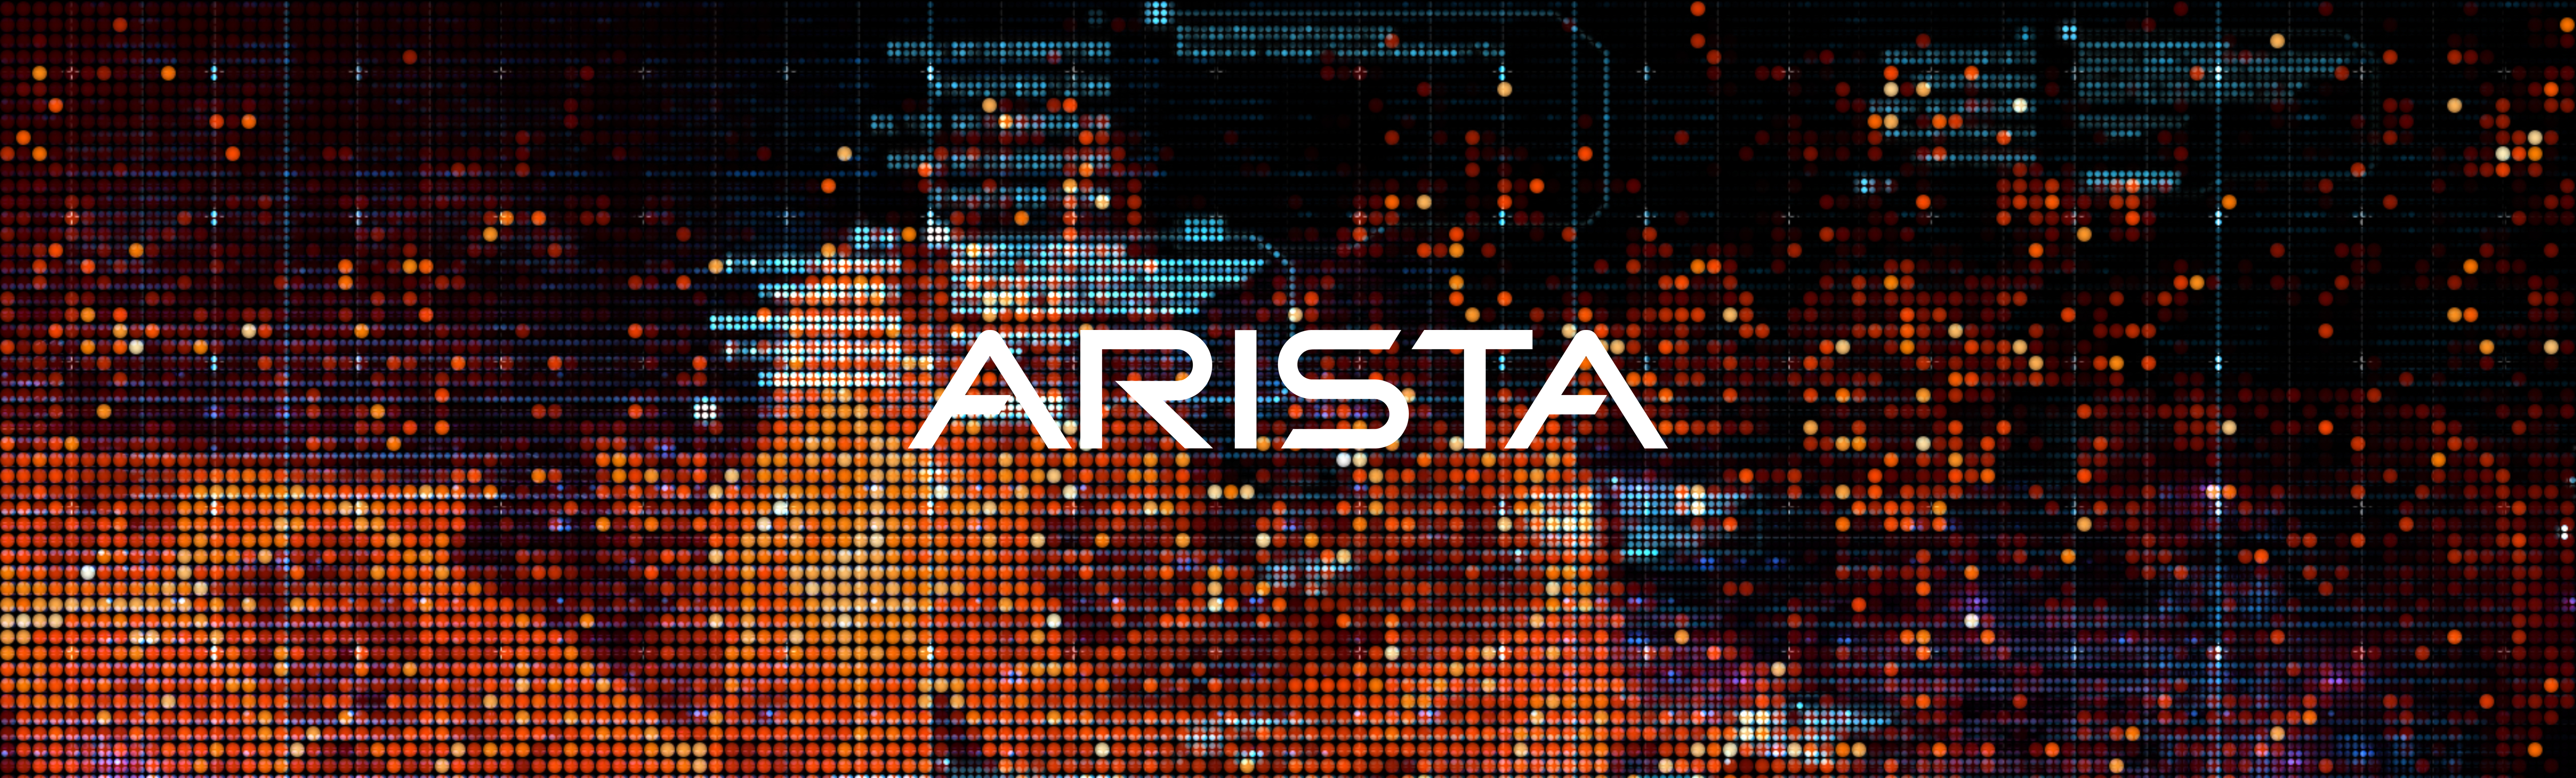 orange pixels cropped with Arista logo